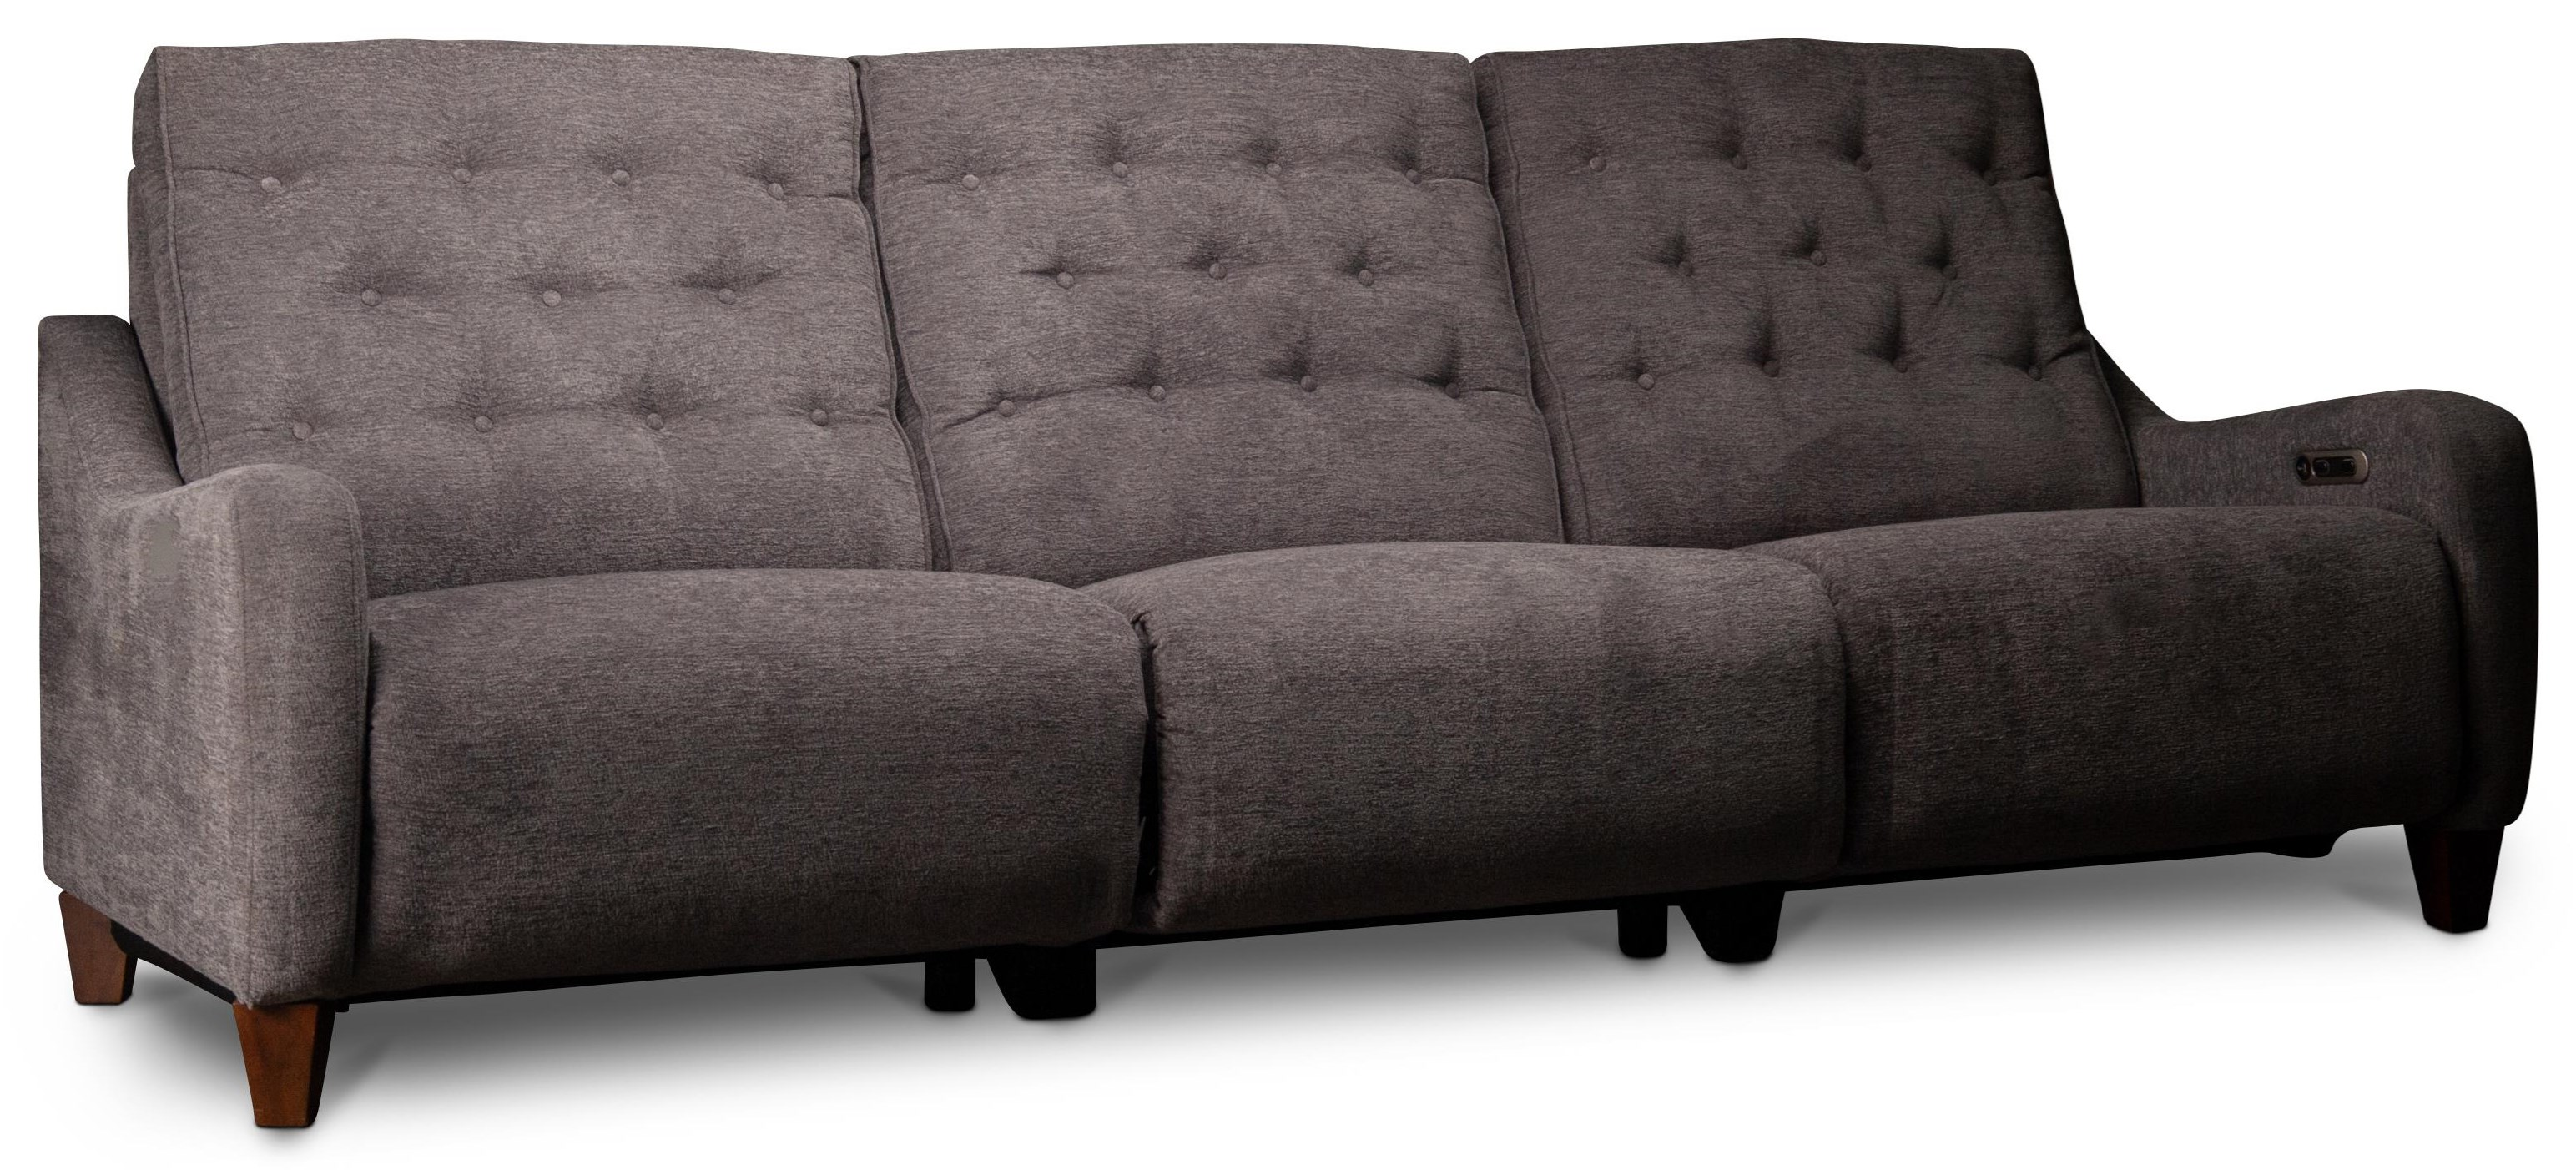 Catalina Catalina Power Reclining Sofa by Parker House at Morris Home